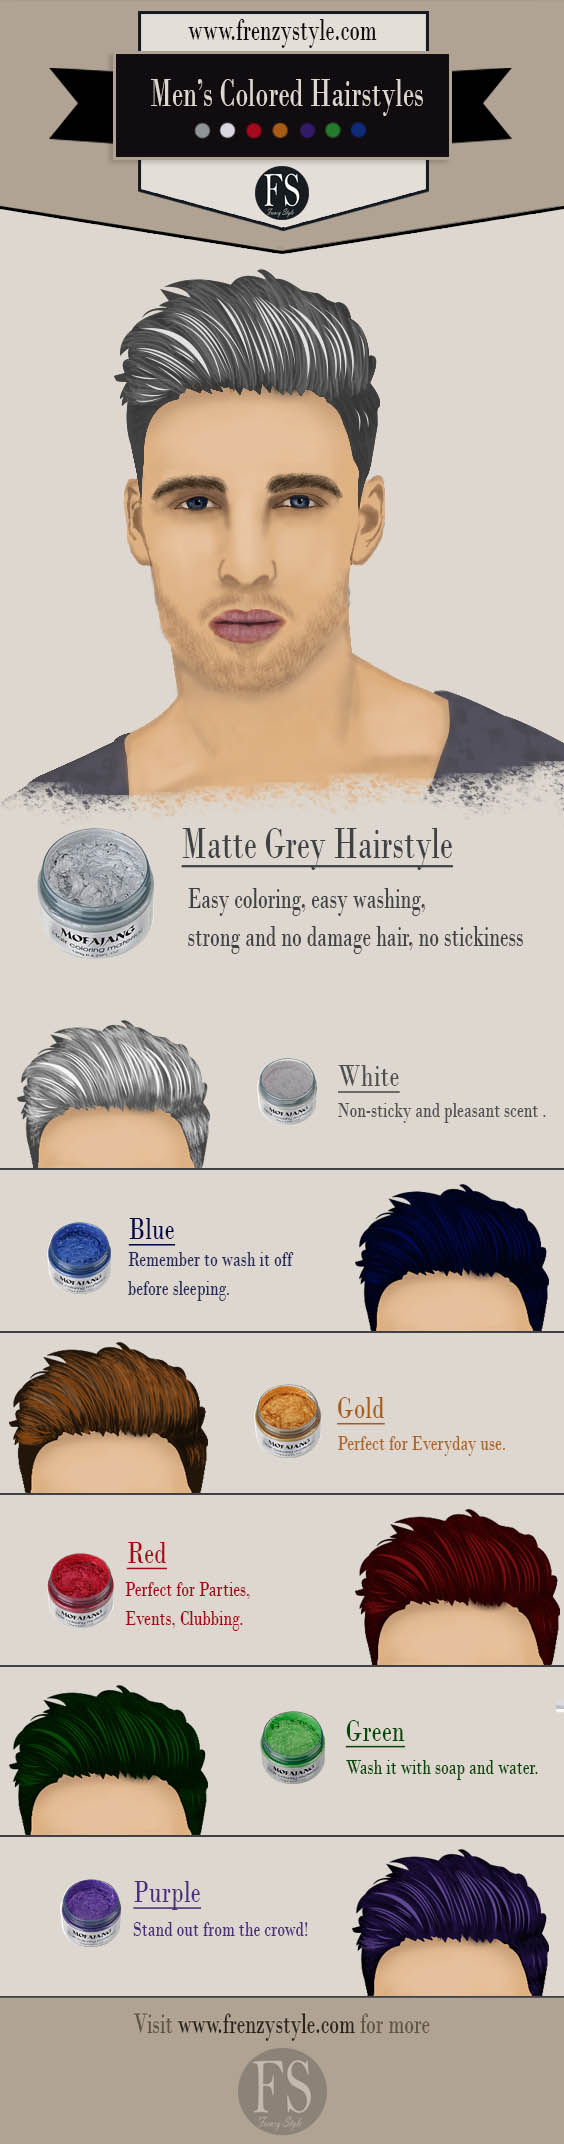 7 Colors for men's hairstyles & used products to make them